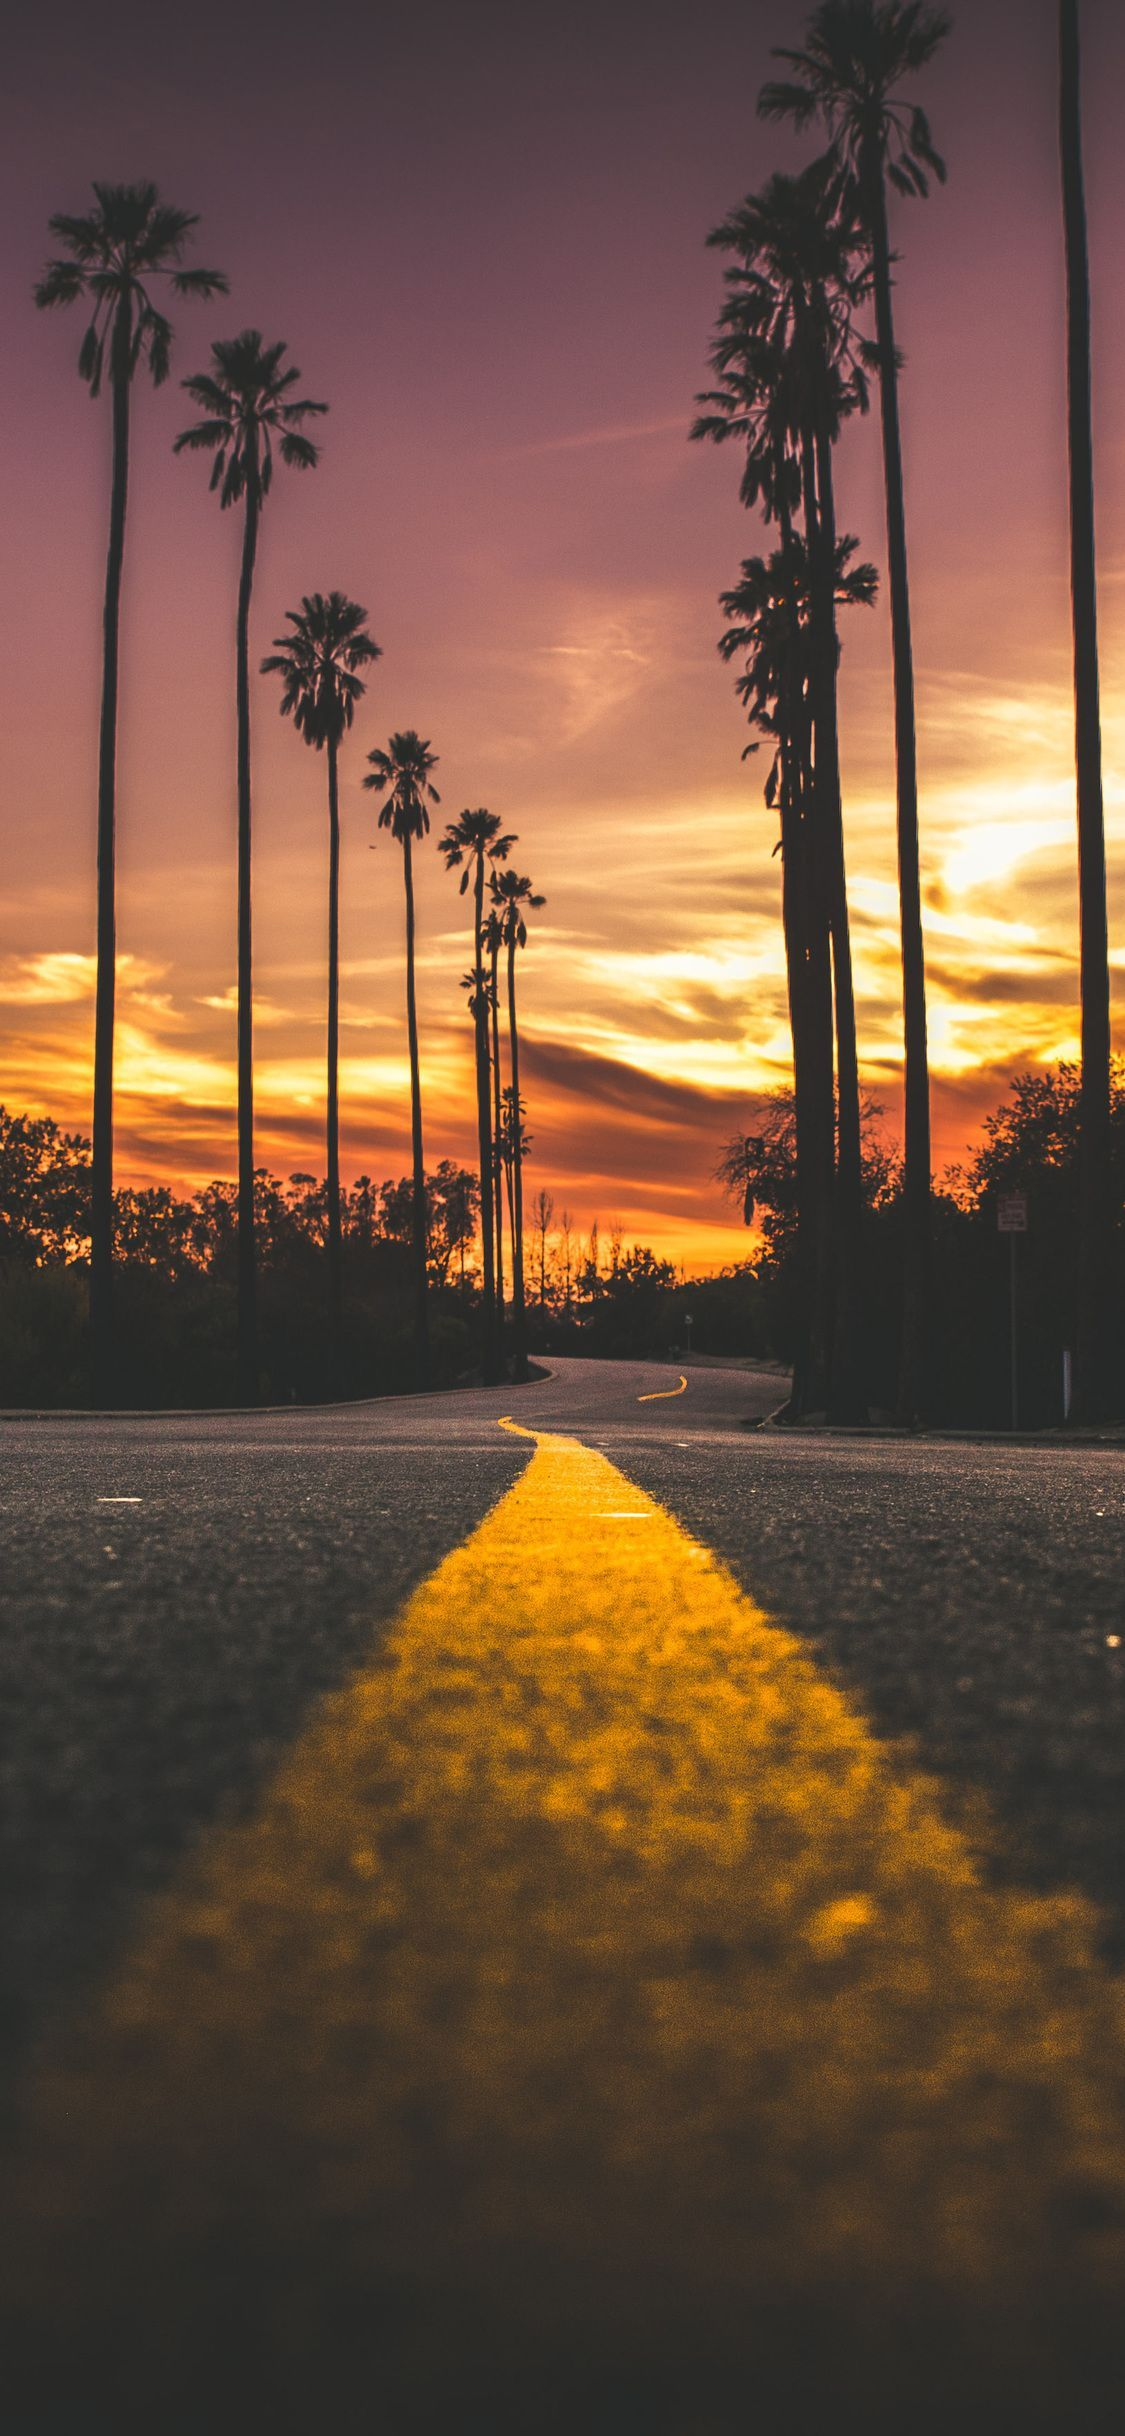 45 City Sunset Iphone Wallpapers Download At Wallpaperbro Sunset Wallpaper Scenery Improve Photography